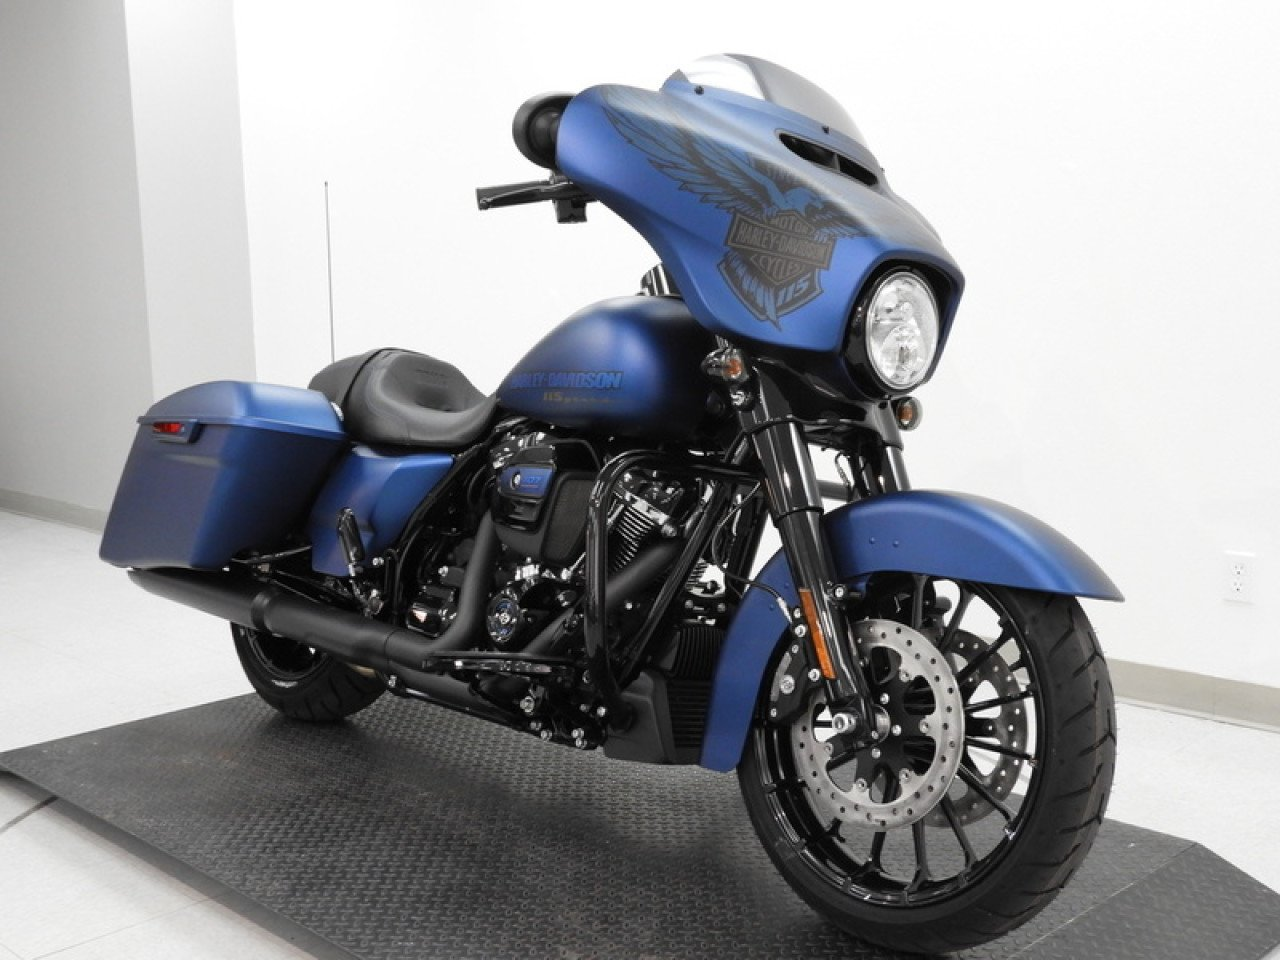 Harley Davidson Touring Motorcycles For Sale Dallas Tx >> 2018 Harley-Davidson Touring 115th Anniversary Street Glide Special for sale near Garland, Texas ...